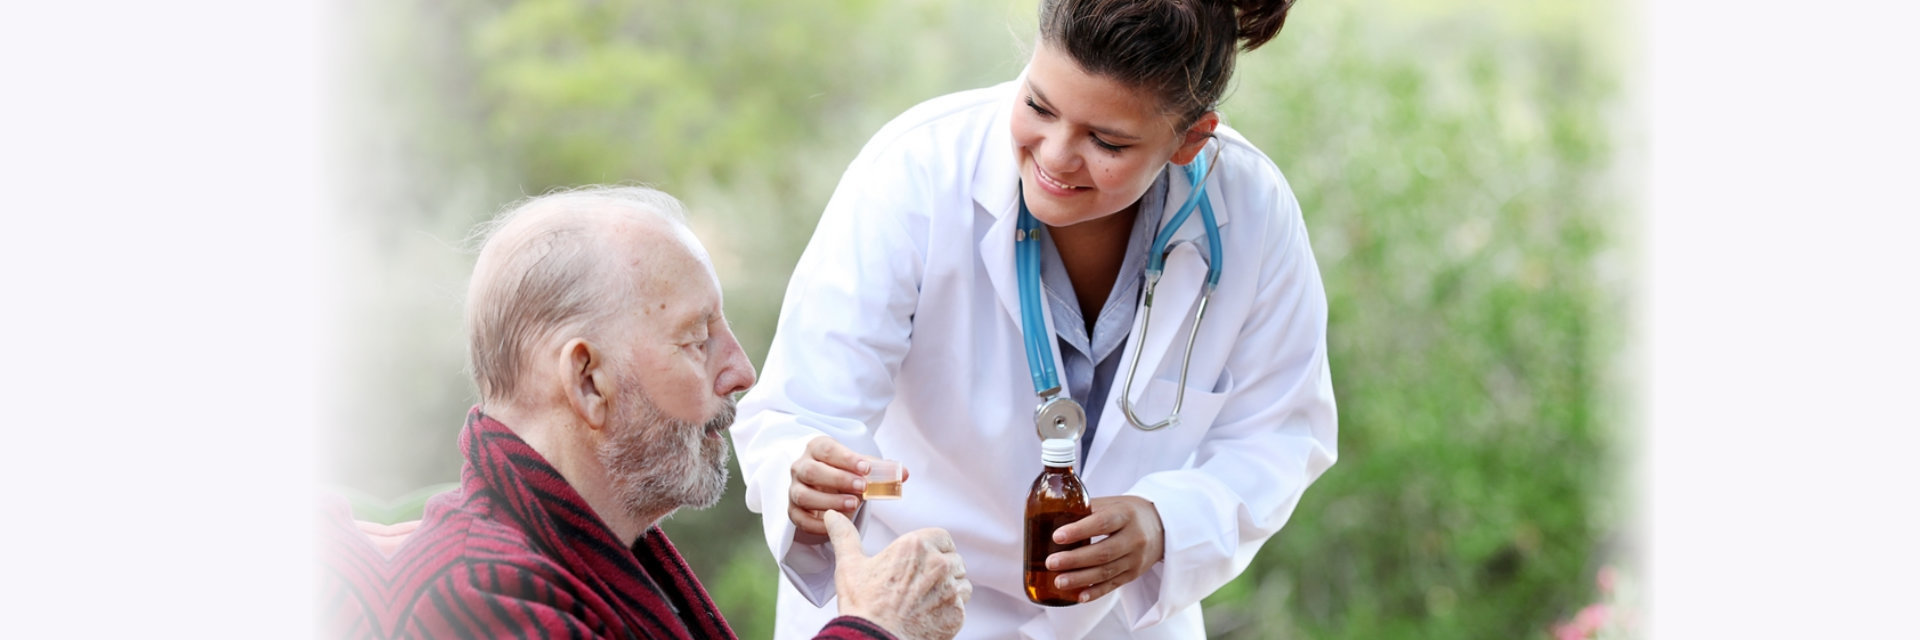 nurse giving elderly his medicine